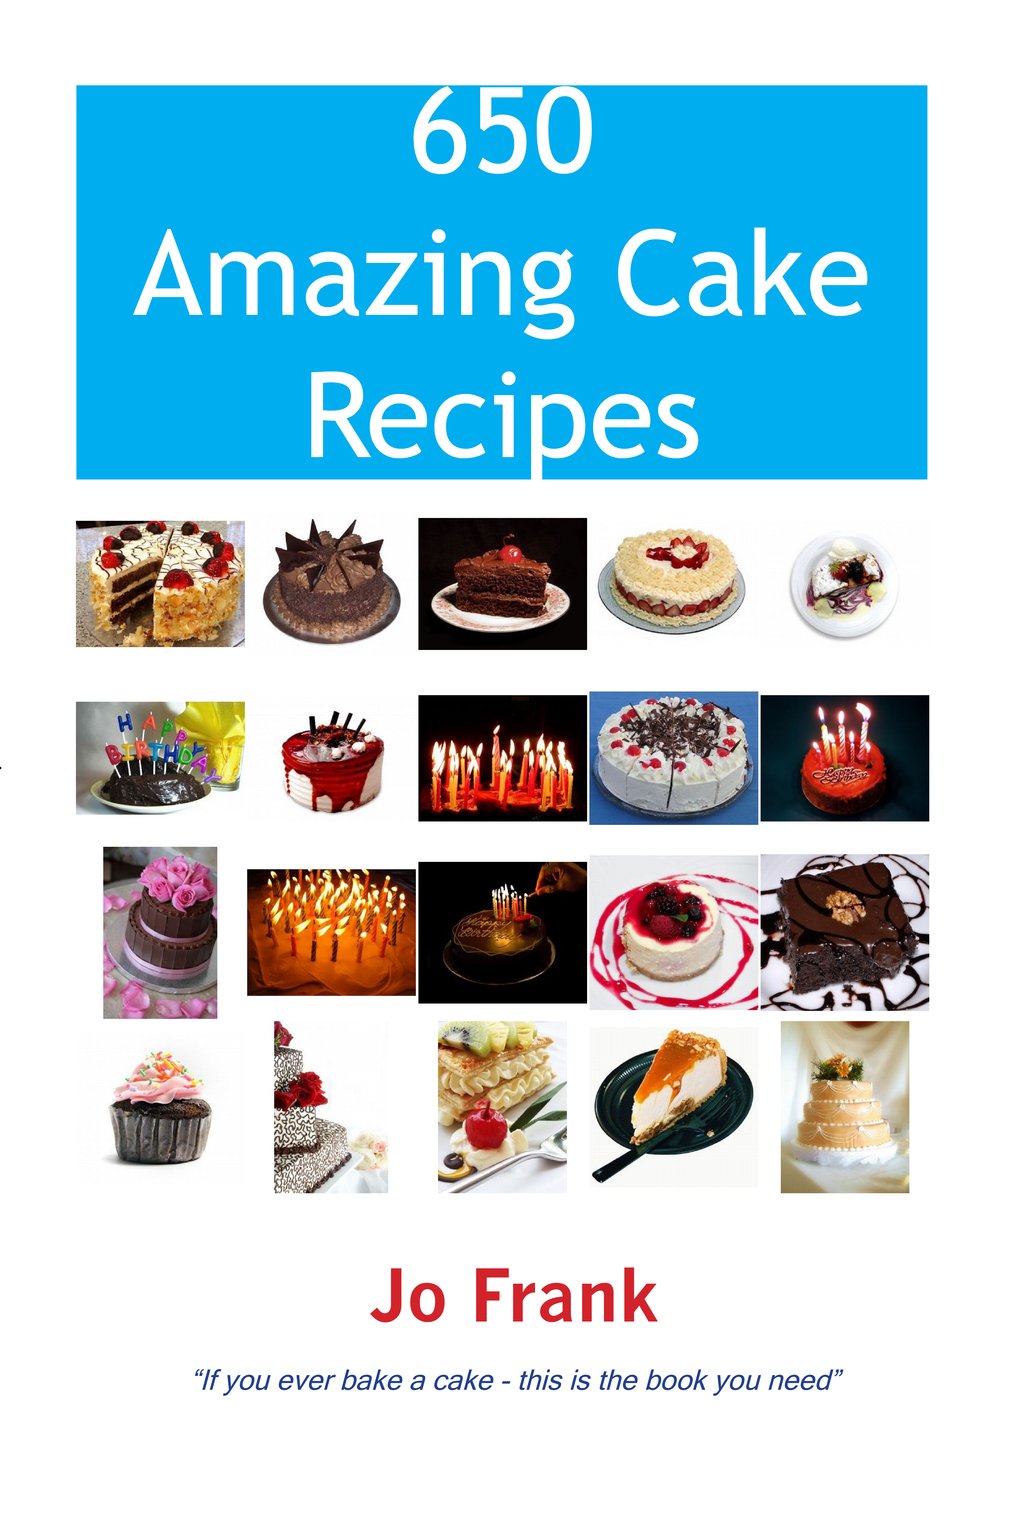 650 Amazing Cake Recipes - Must Haves, Most Wanted and the Ones you can't live without. By: Jo Frank